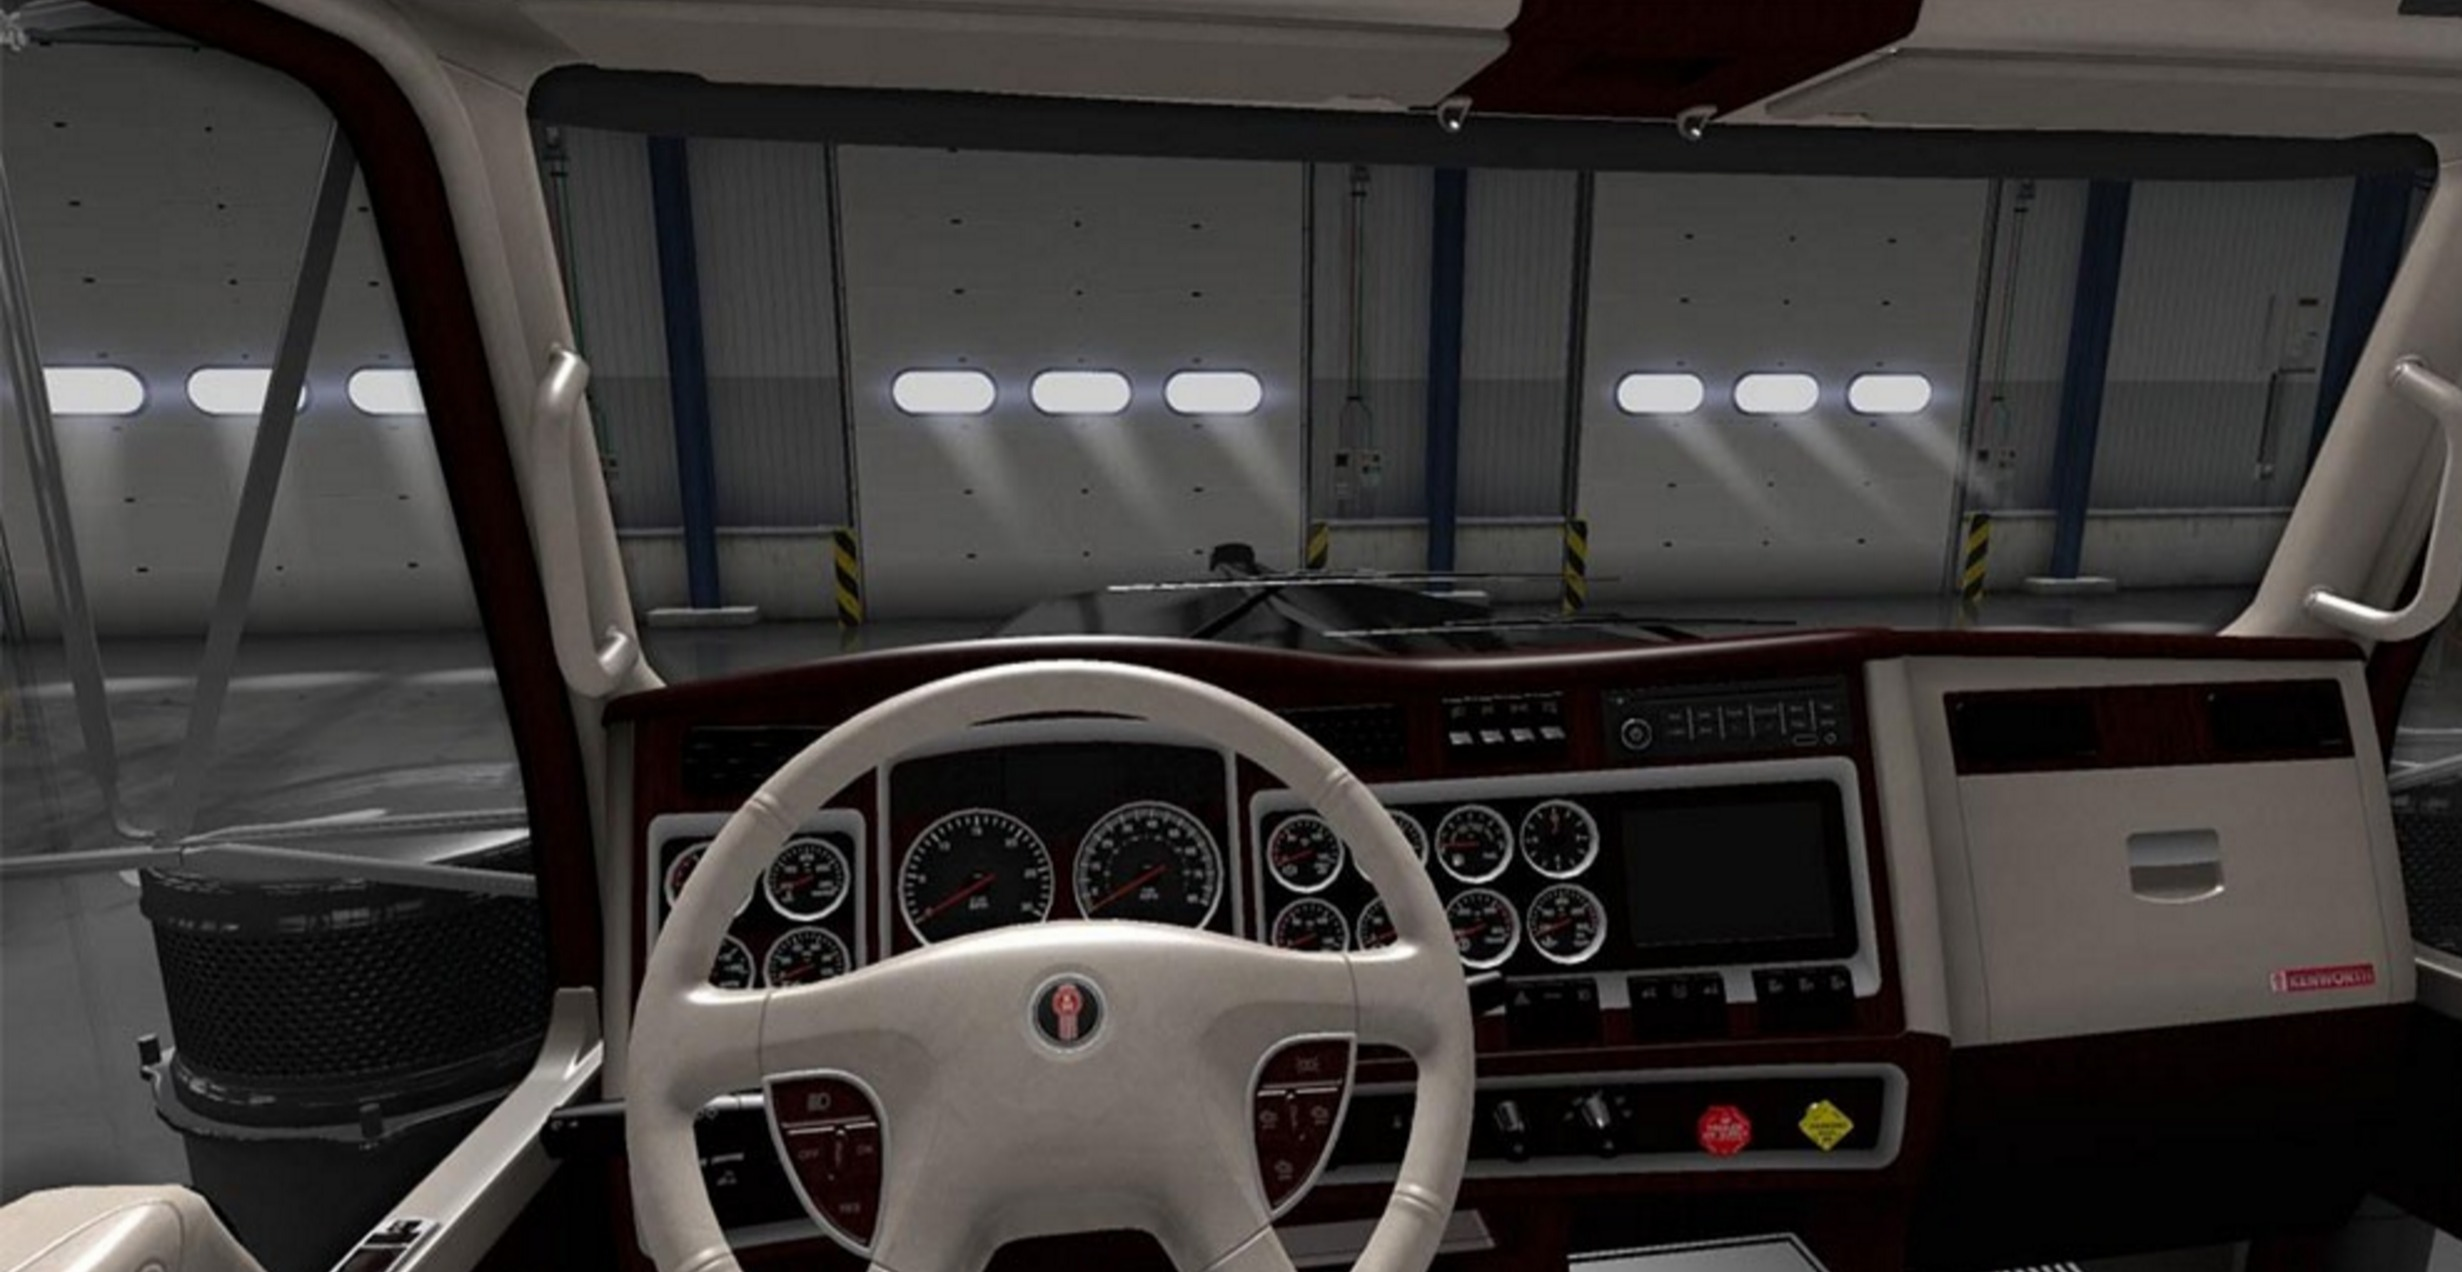 Kenworth W900 Lux Interior V2 For Truck For Ats Euro Truck Simulator 2 Mods